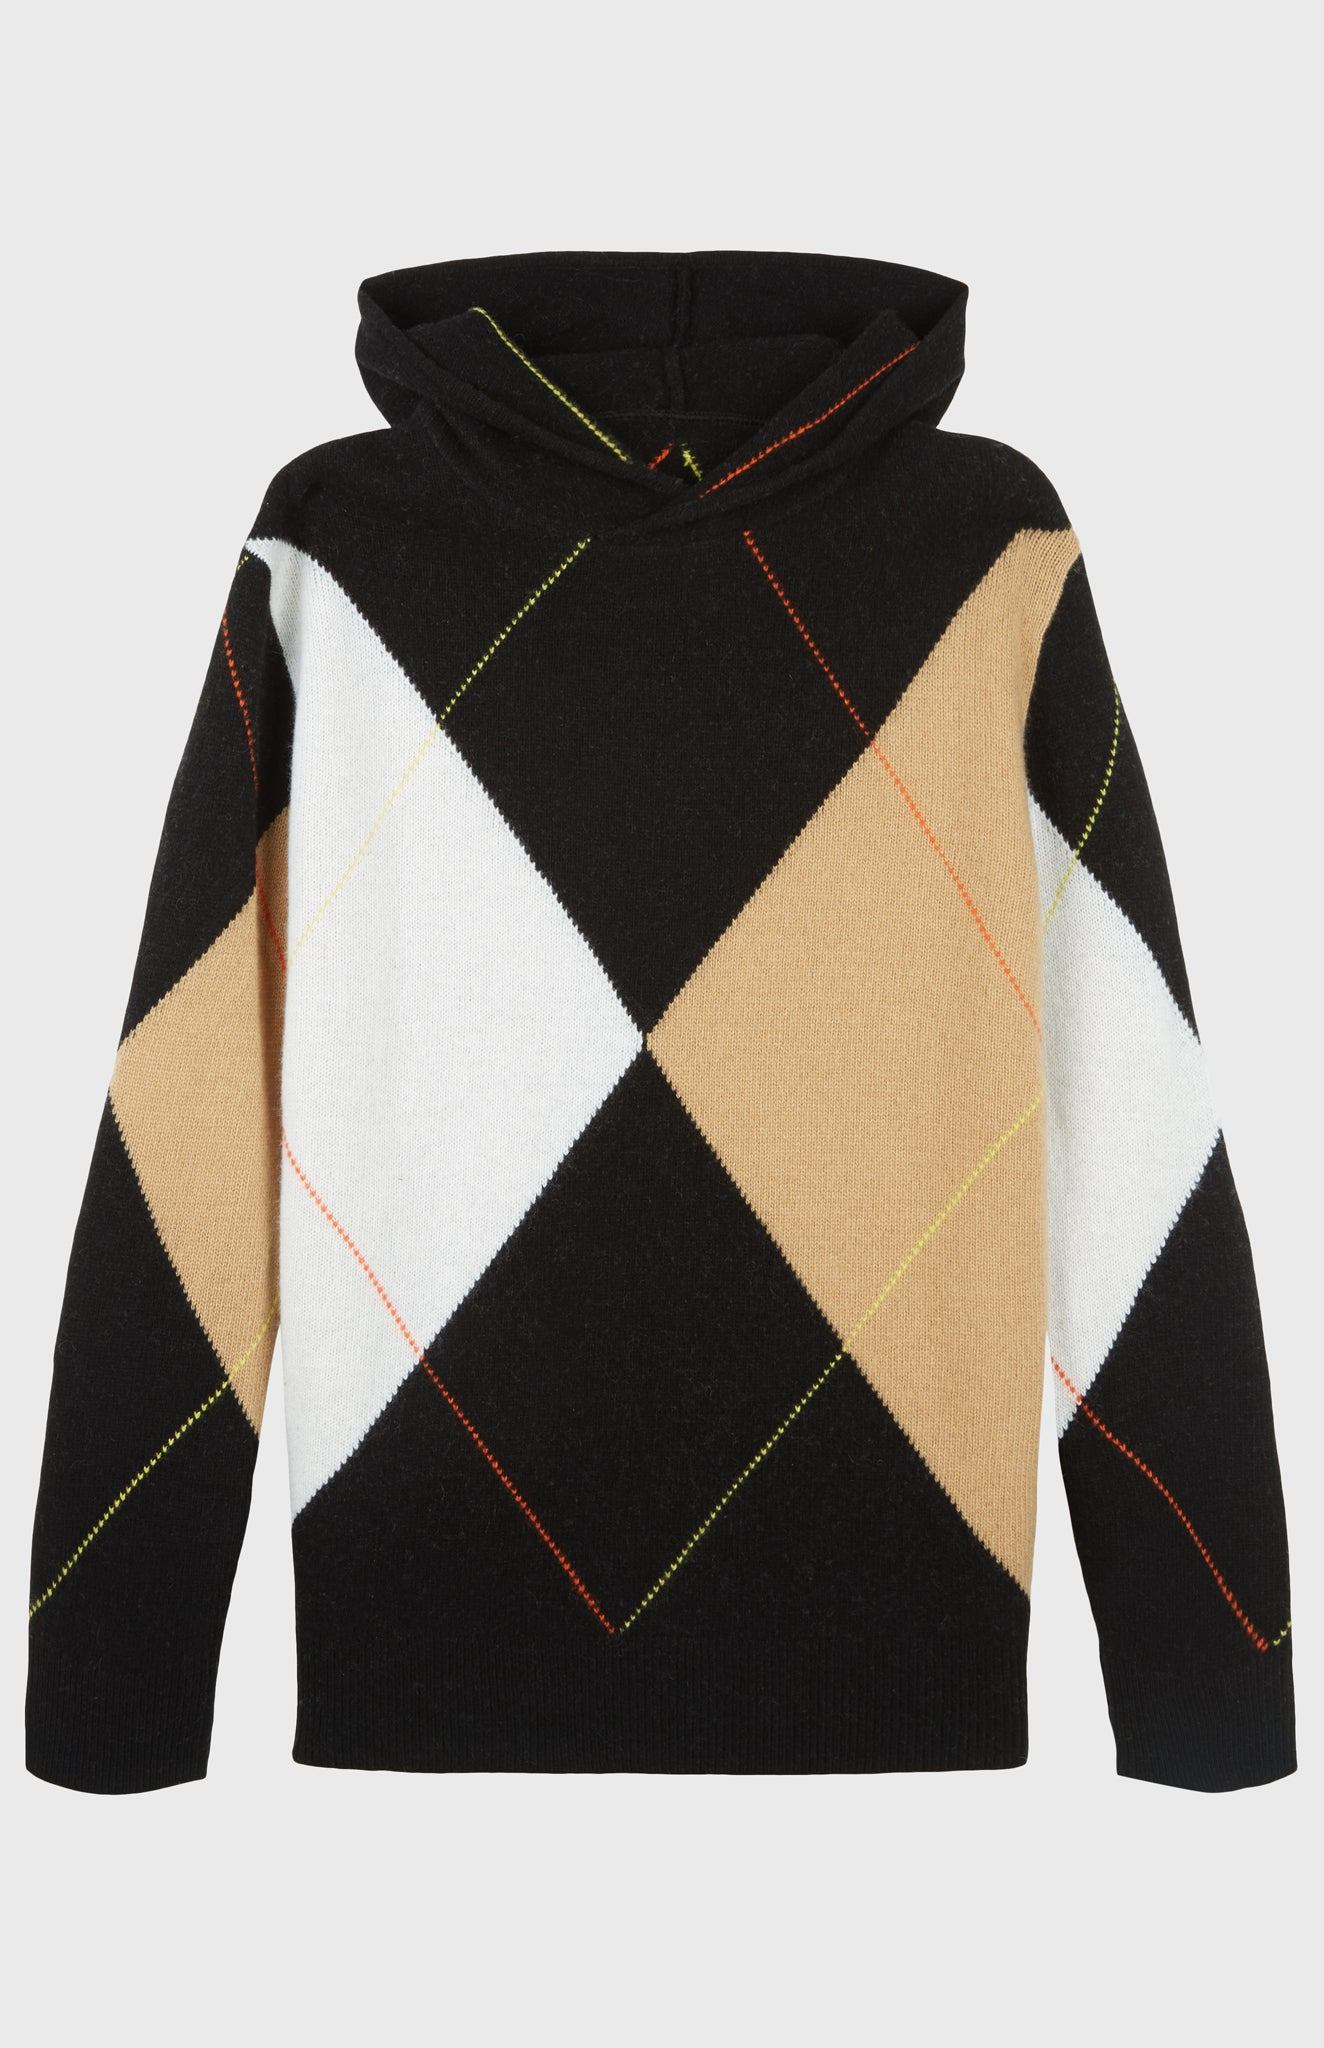 Pringle Reissued Unisex Grand Argyle Hoodie in Black, Camel and white